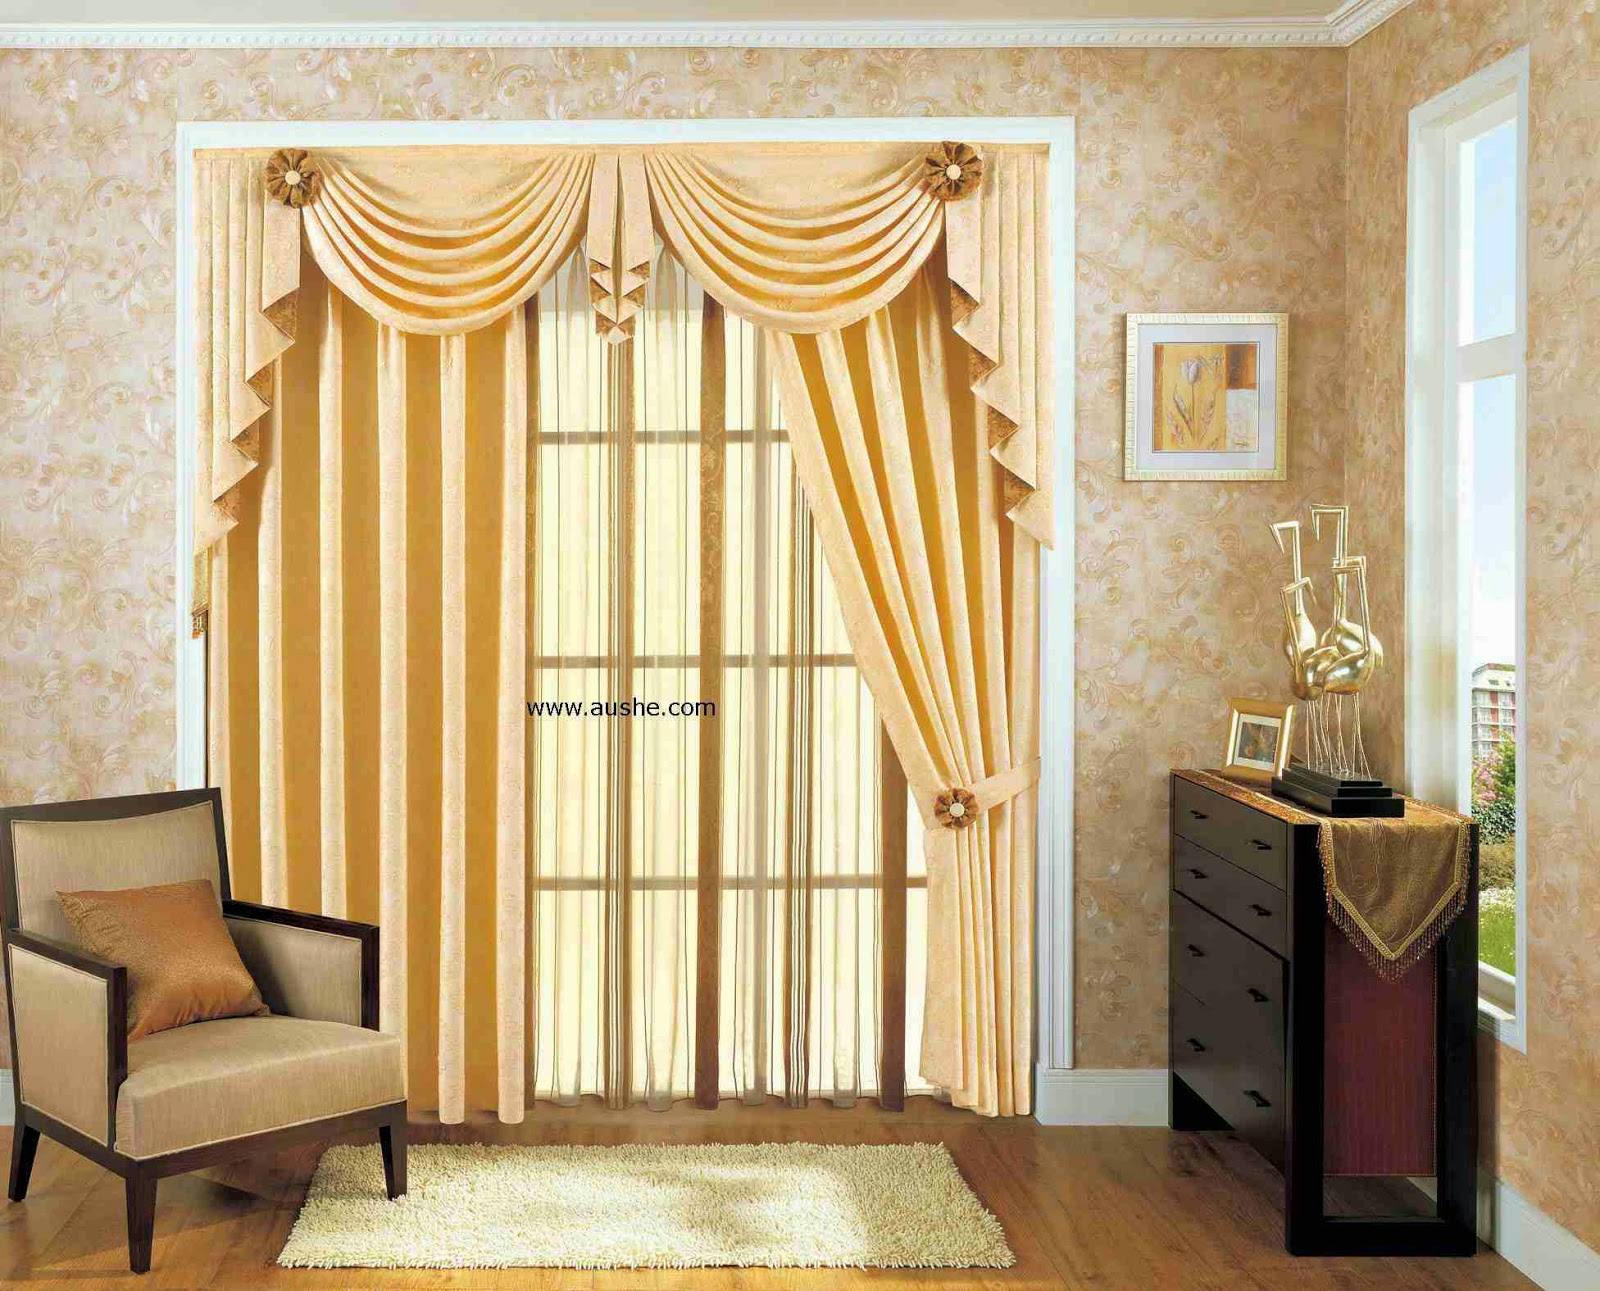 Home decorating interior design ideas contemporary for Interior curtain designs